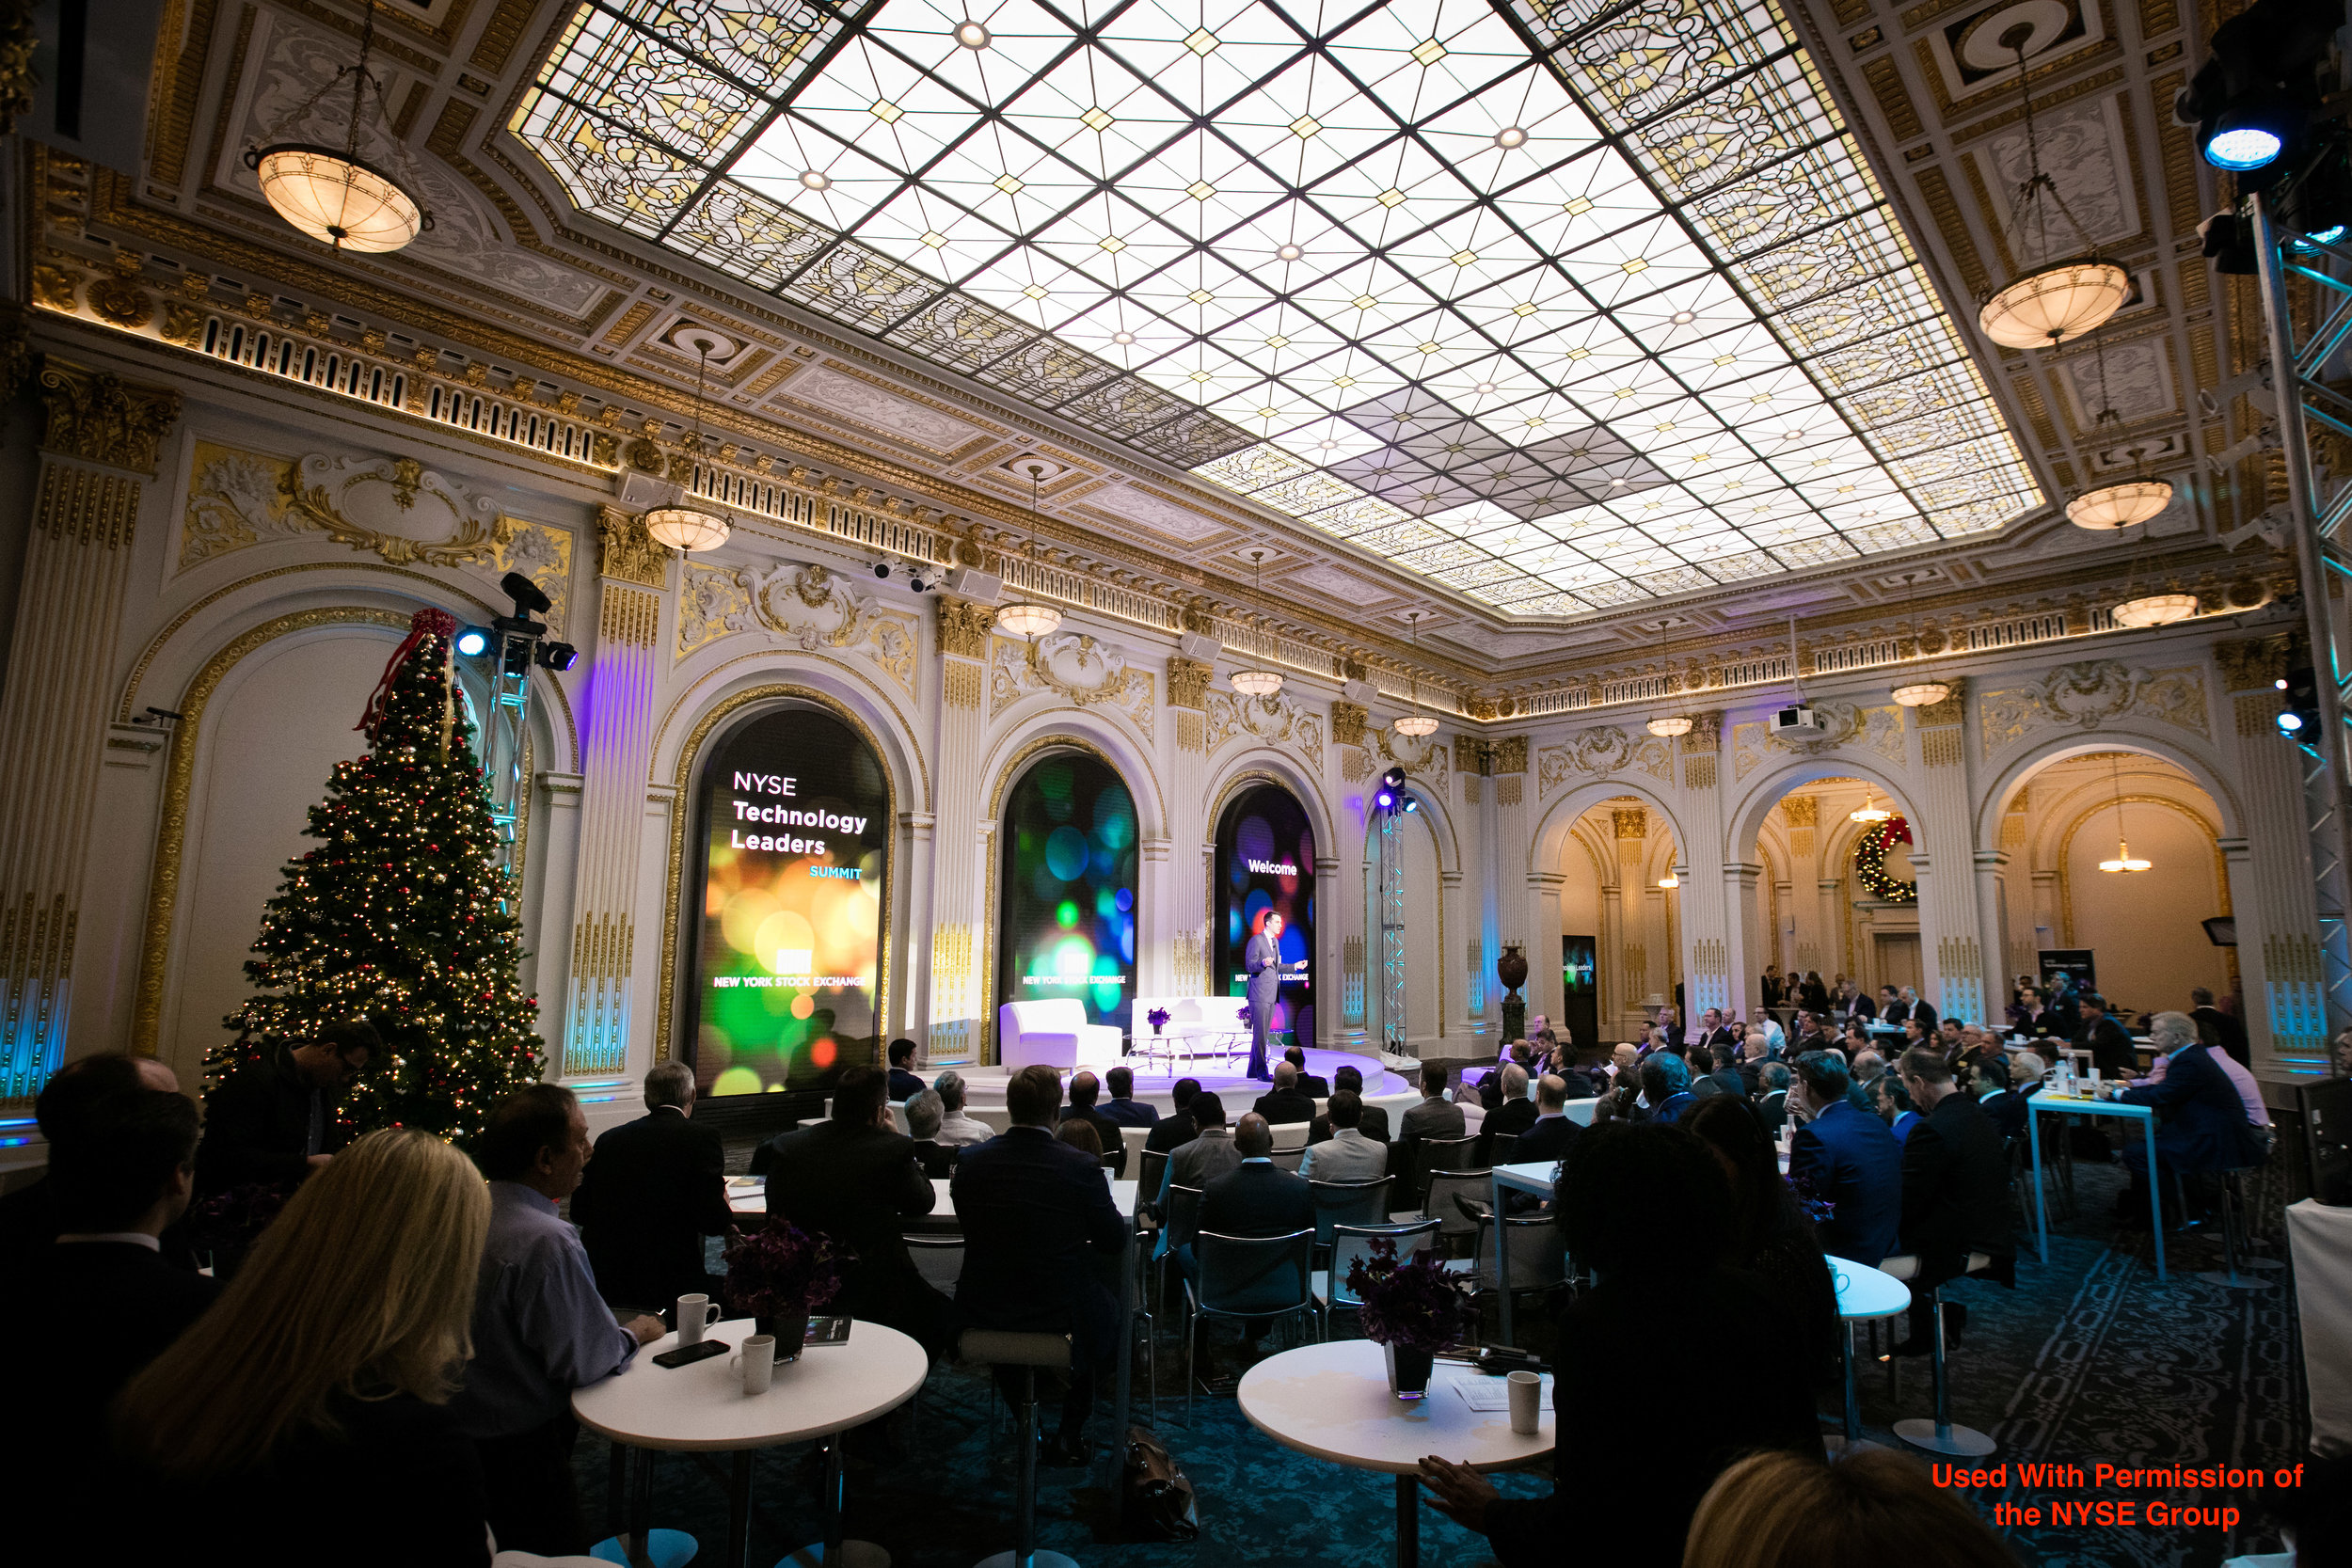 NYSE Leaders Technology Summit 12-5-16.JPG